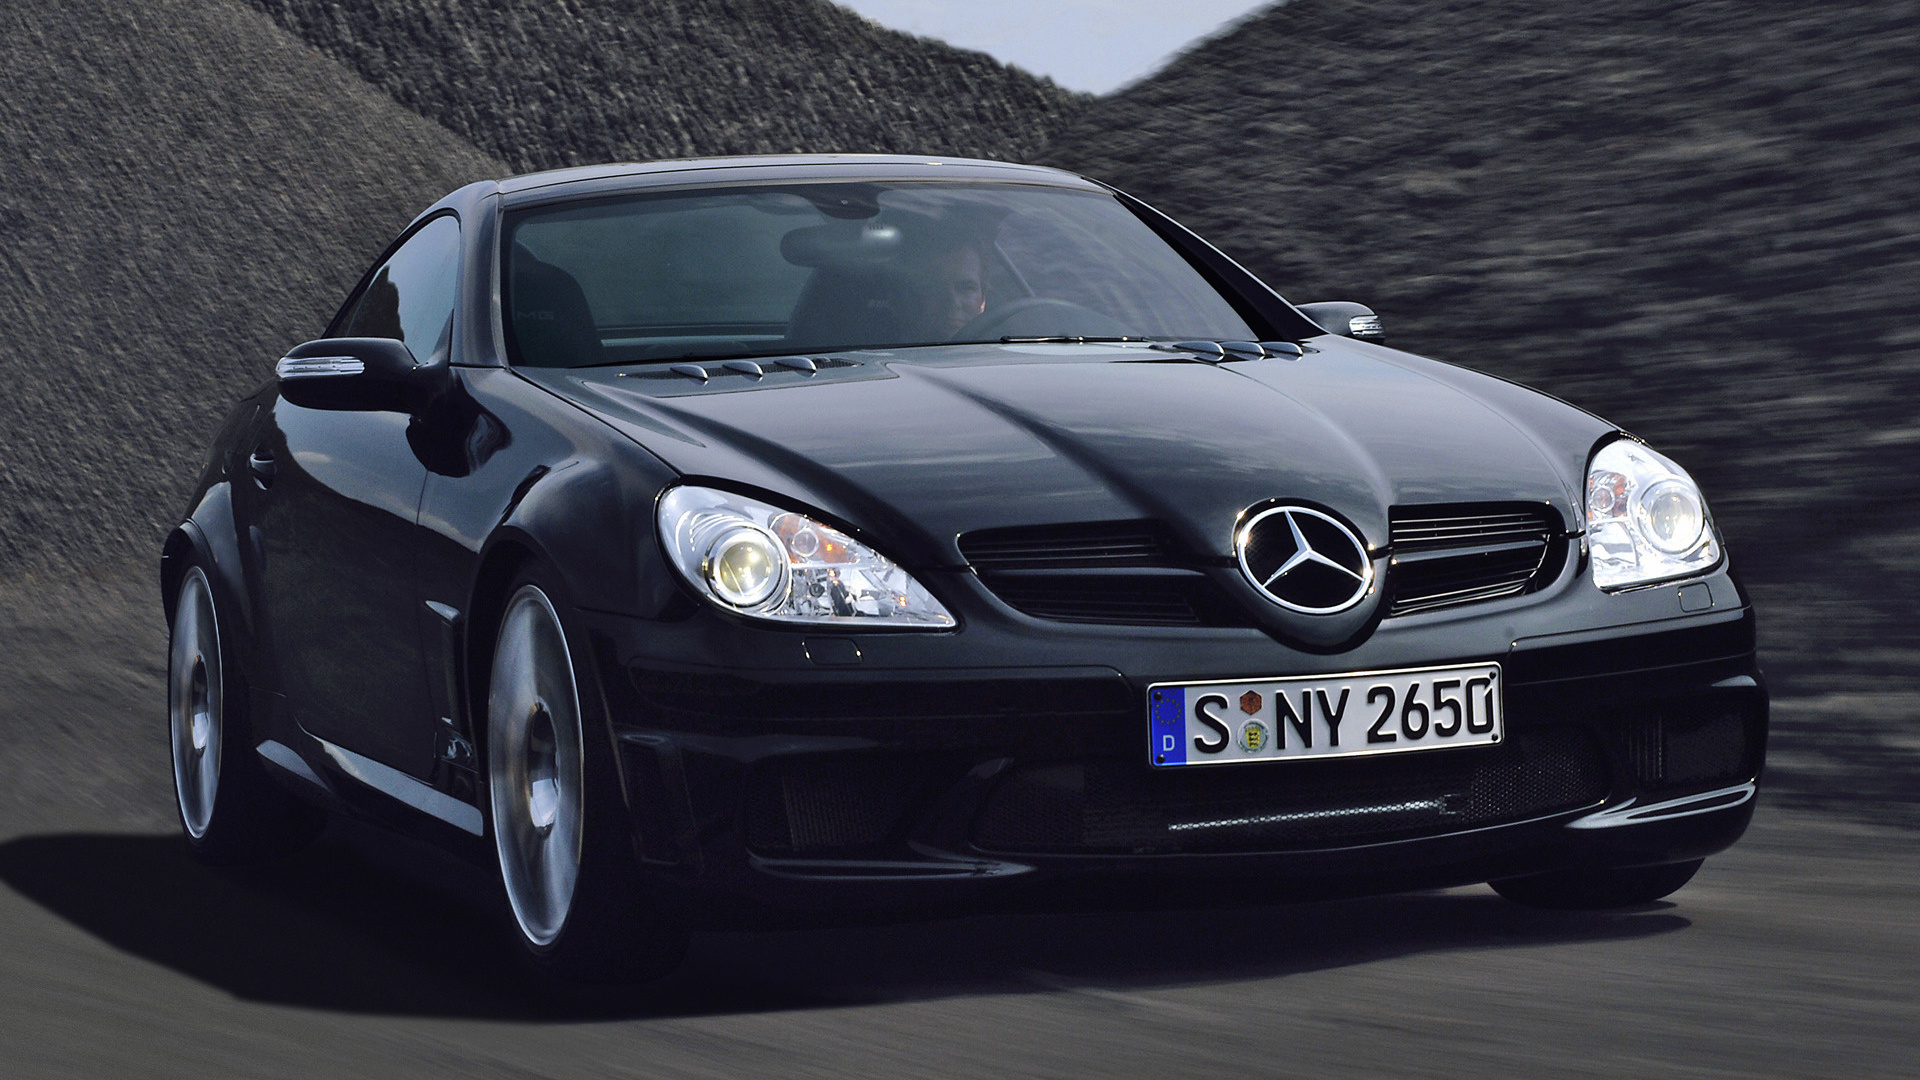 mercedes benz slk 55 amg black series 2006 wallpapers and hd images car pixel. Black Bedroom Furniture Sets. Home Design Ideas